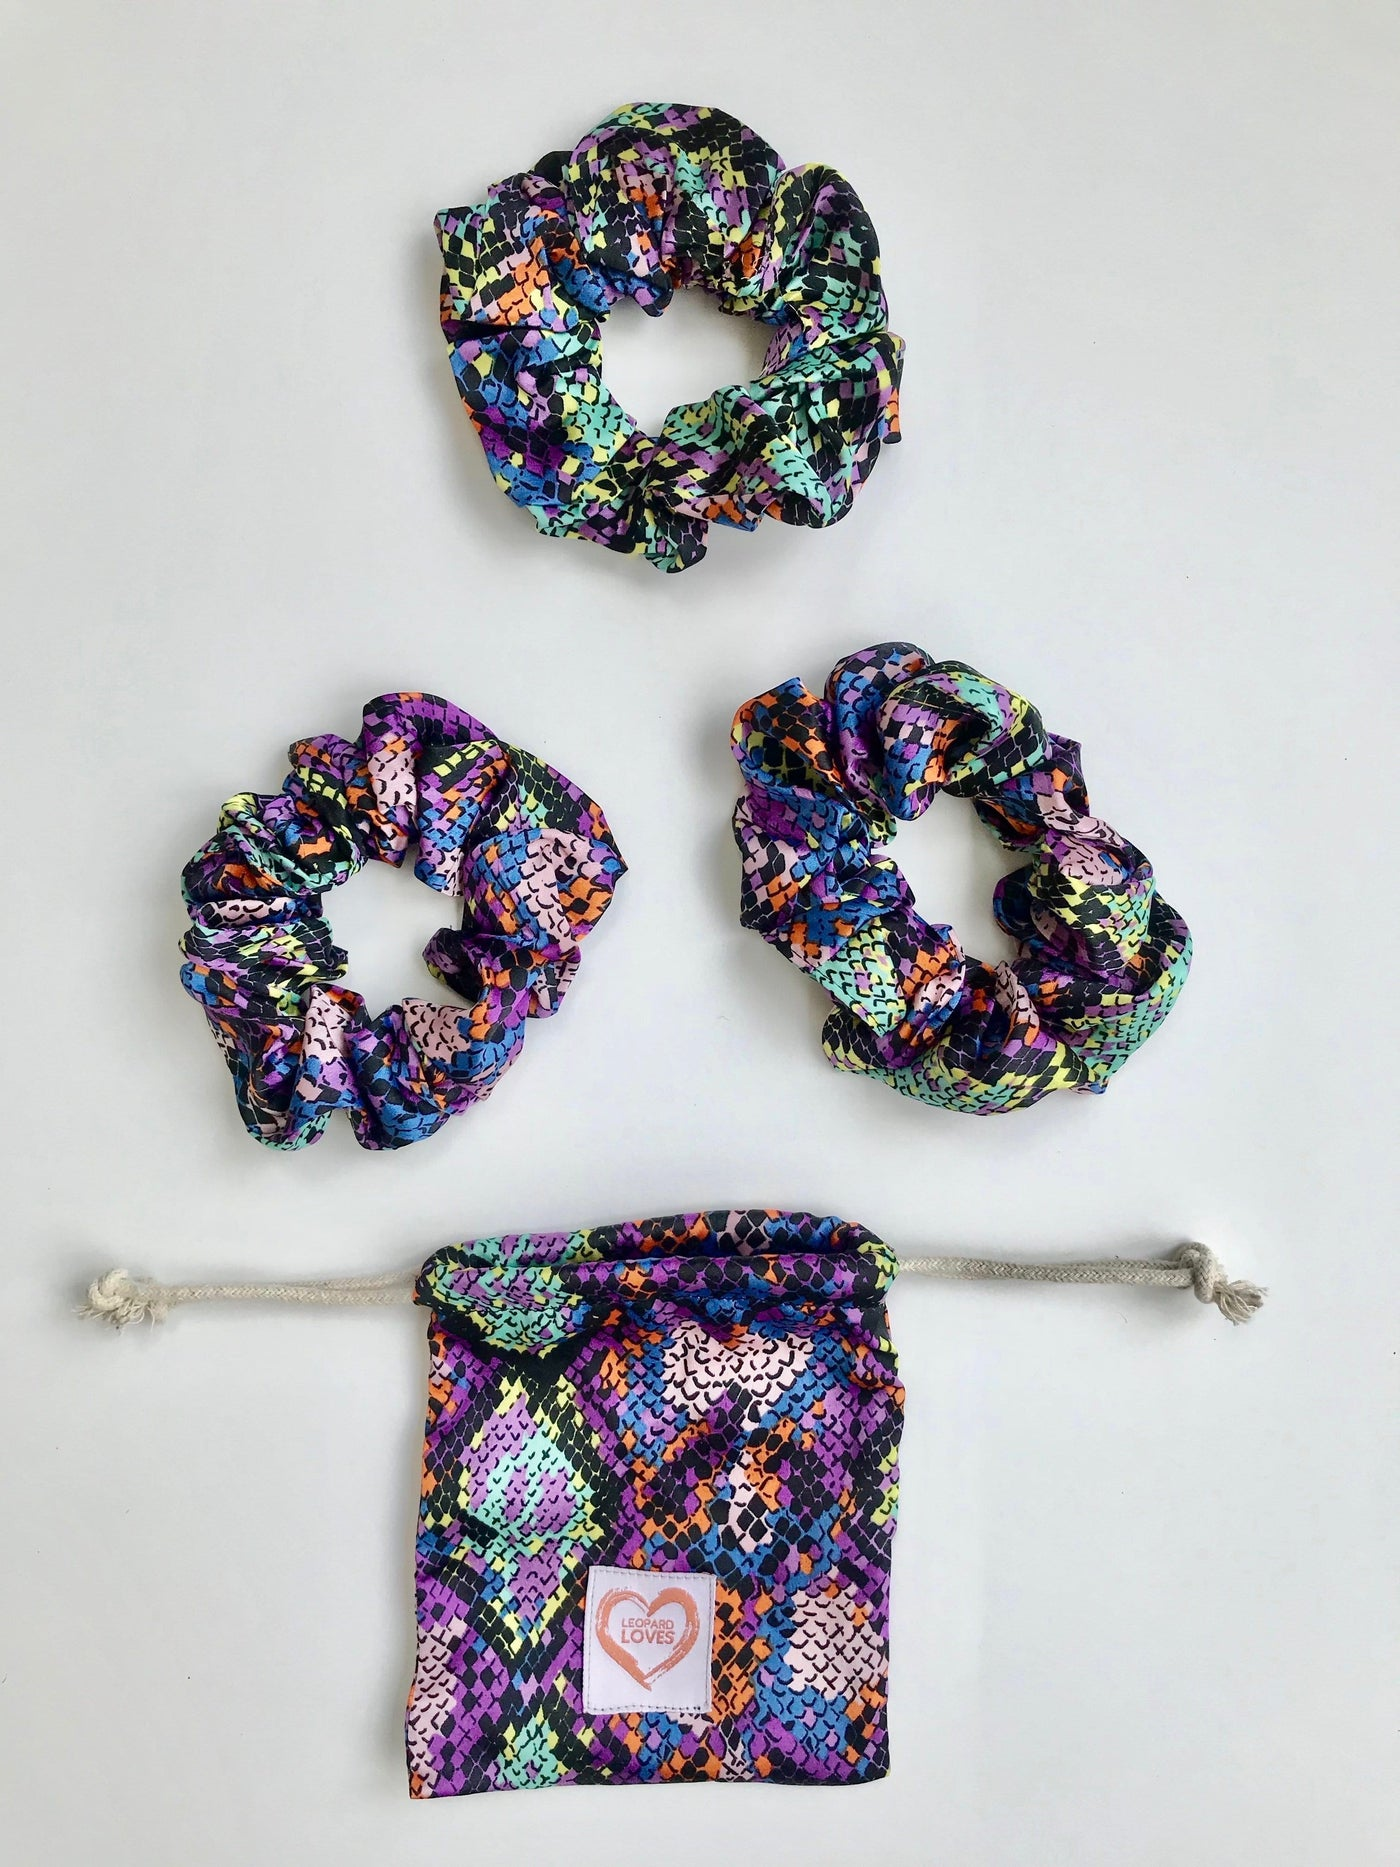 Pack of 3 scrunchies with drawstring bag in Multi Snake print by Dancing Leopard